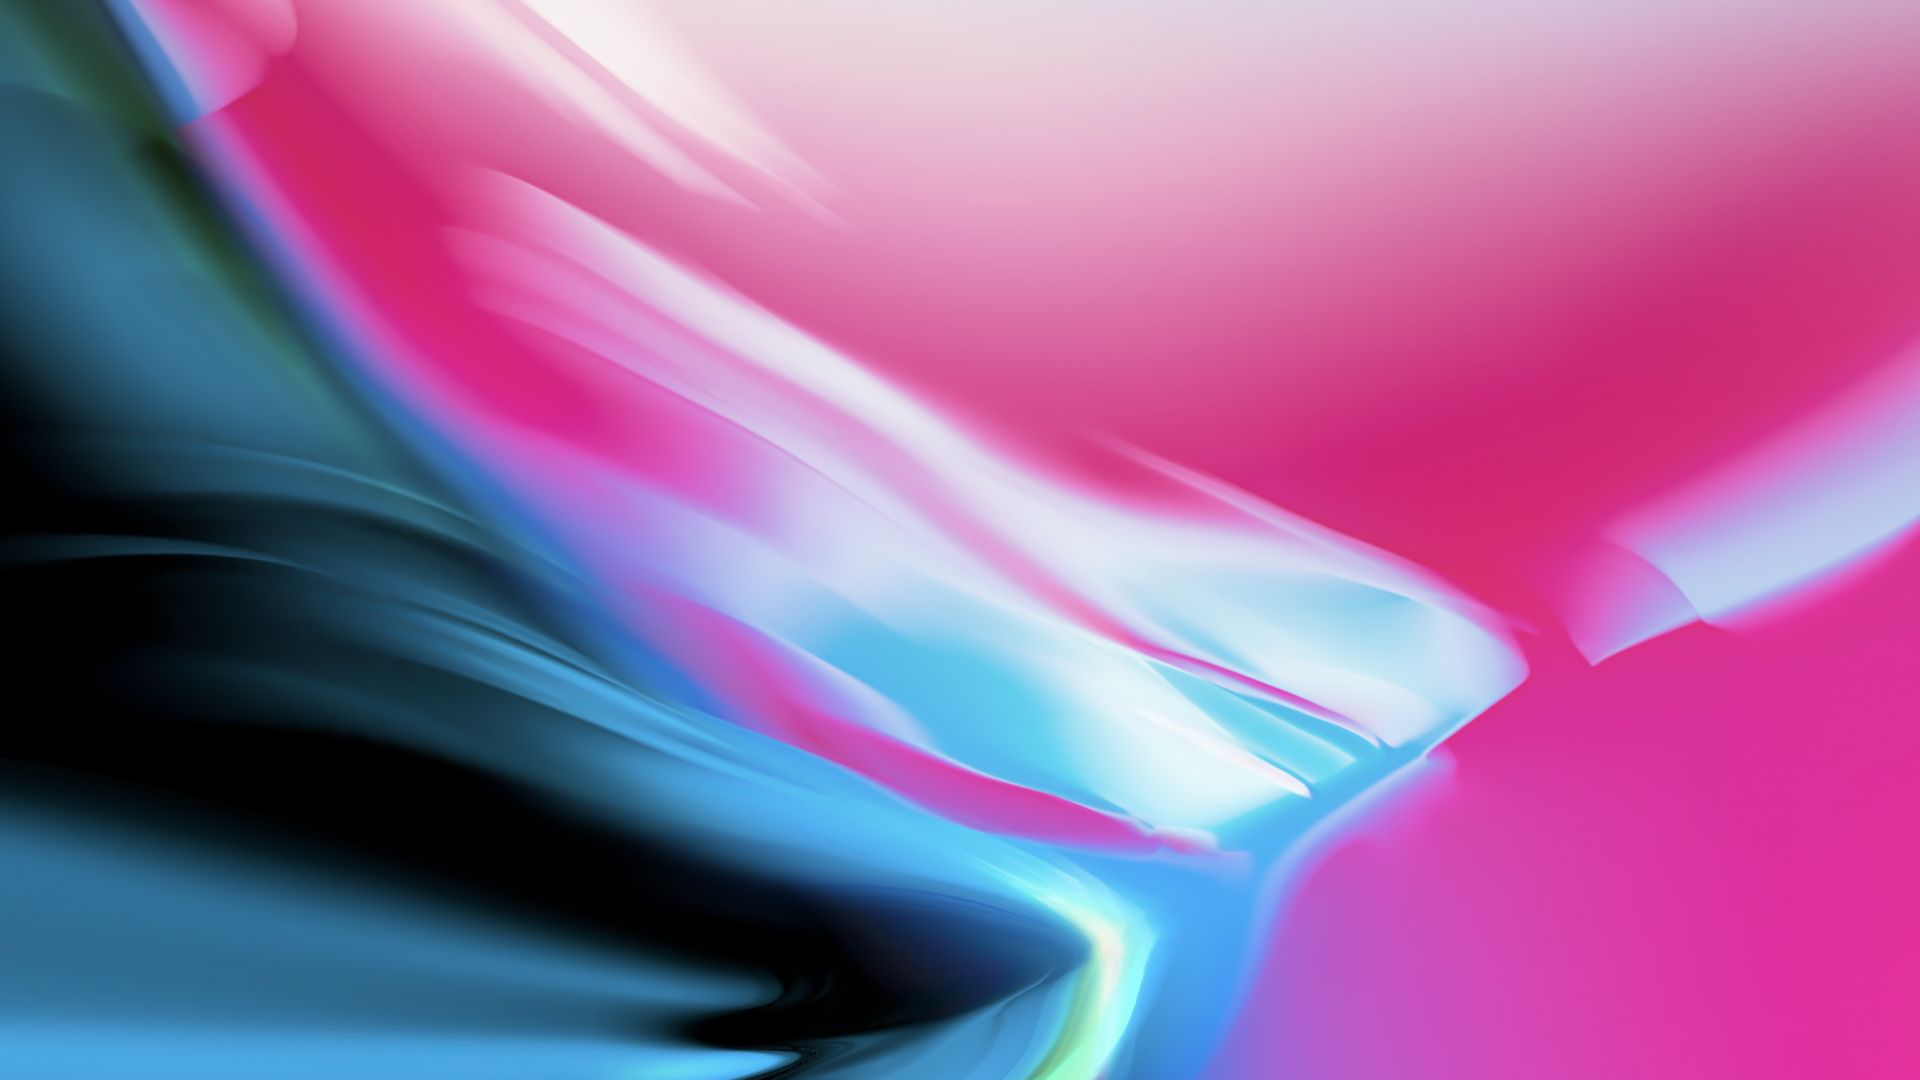 iPhone X wallpaper, iPhone 8, iOS 11, colorful, HD (horizontal)